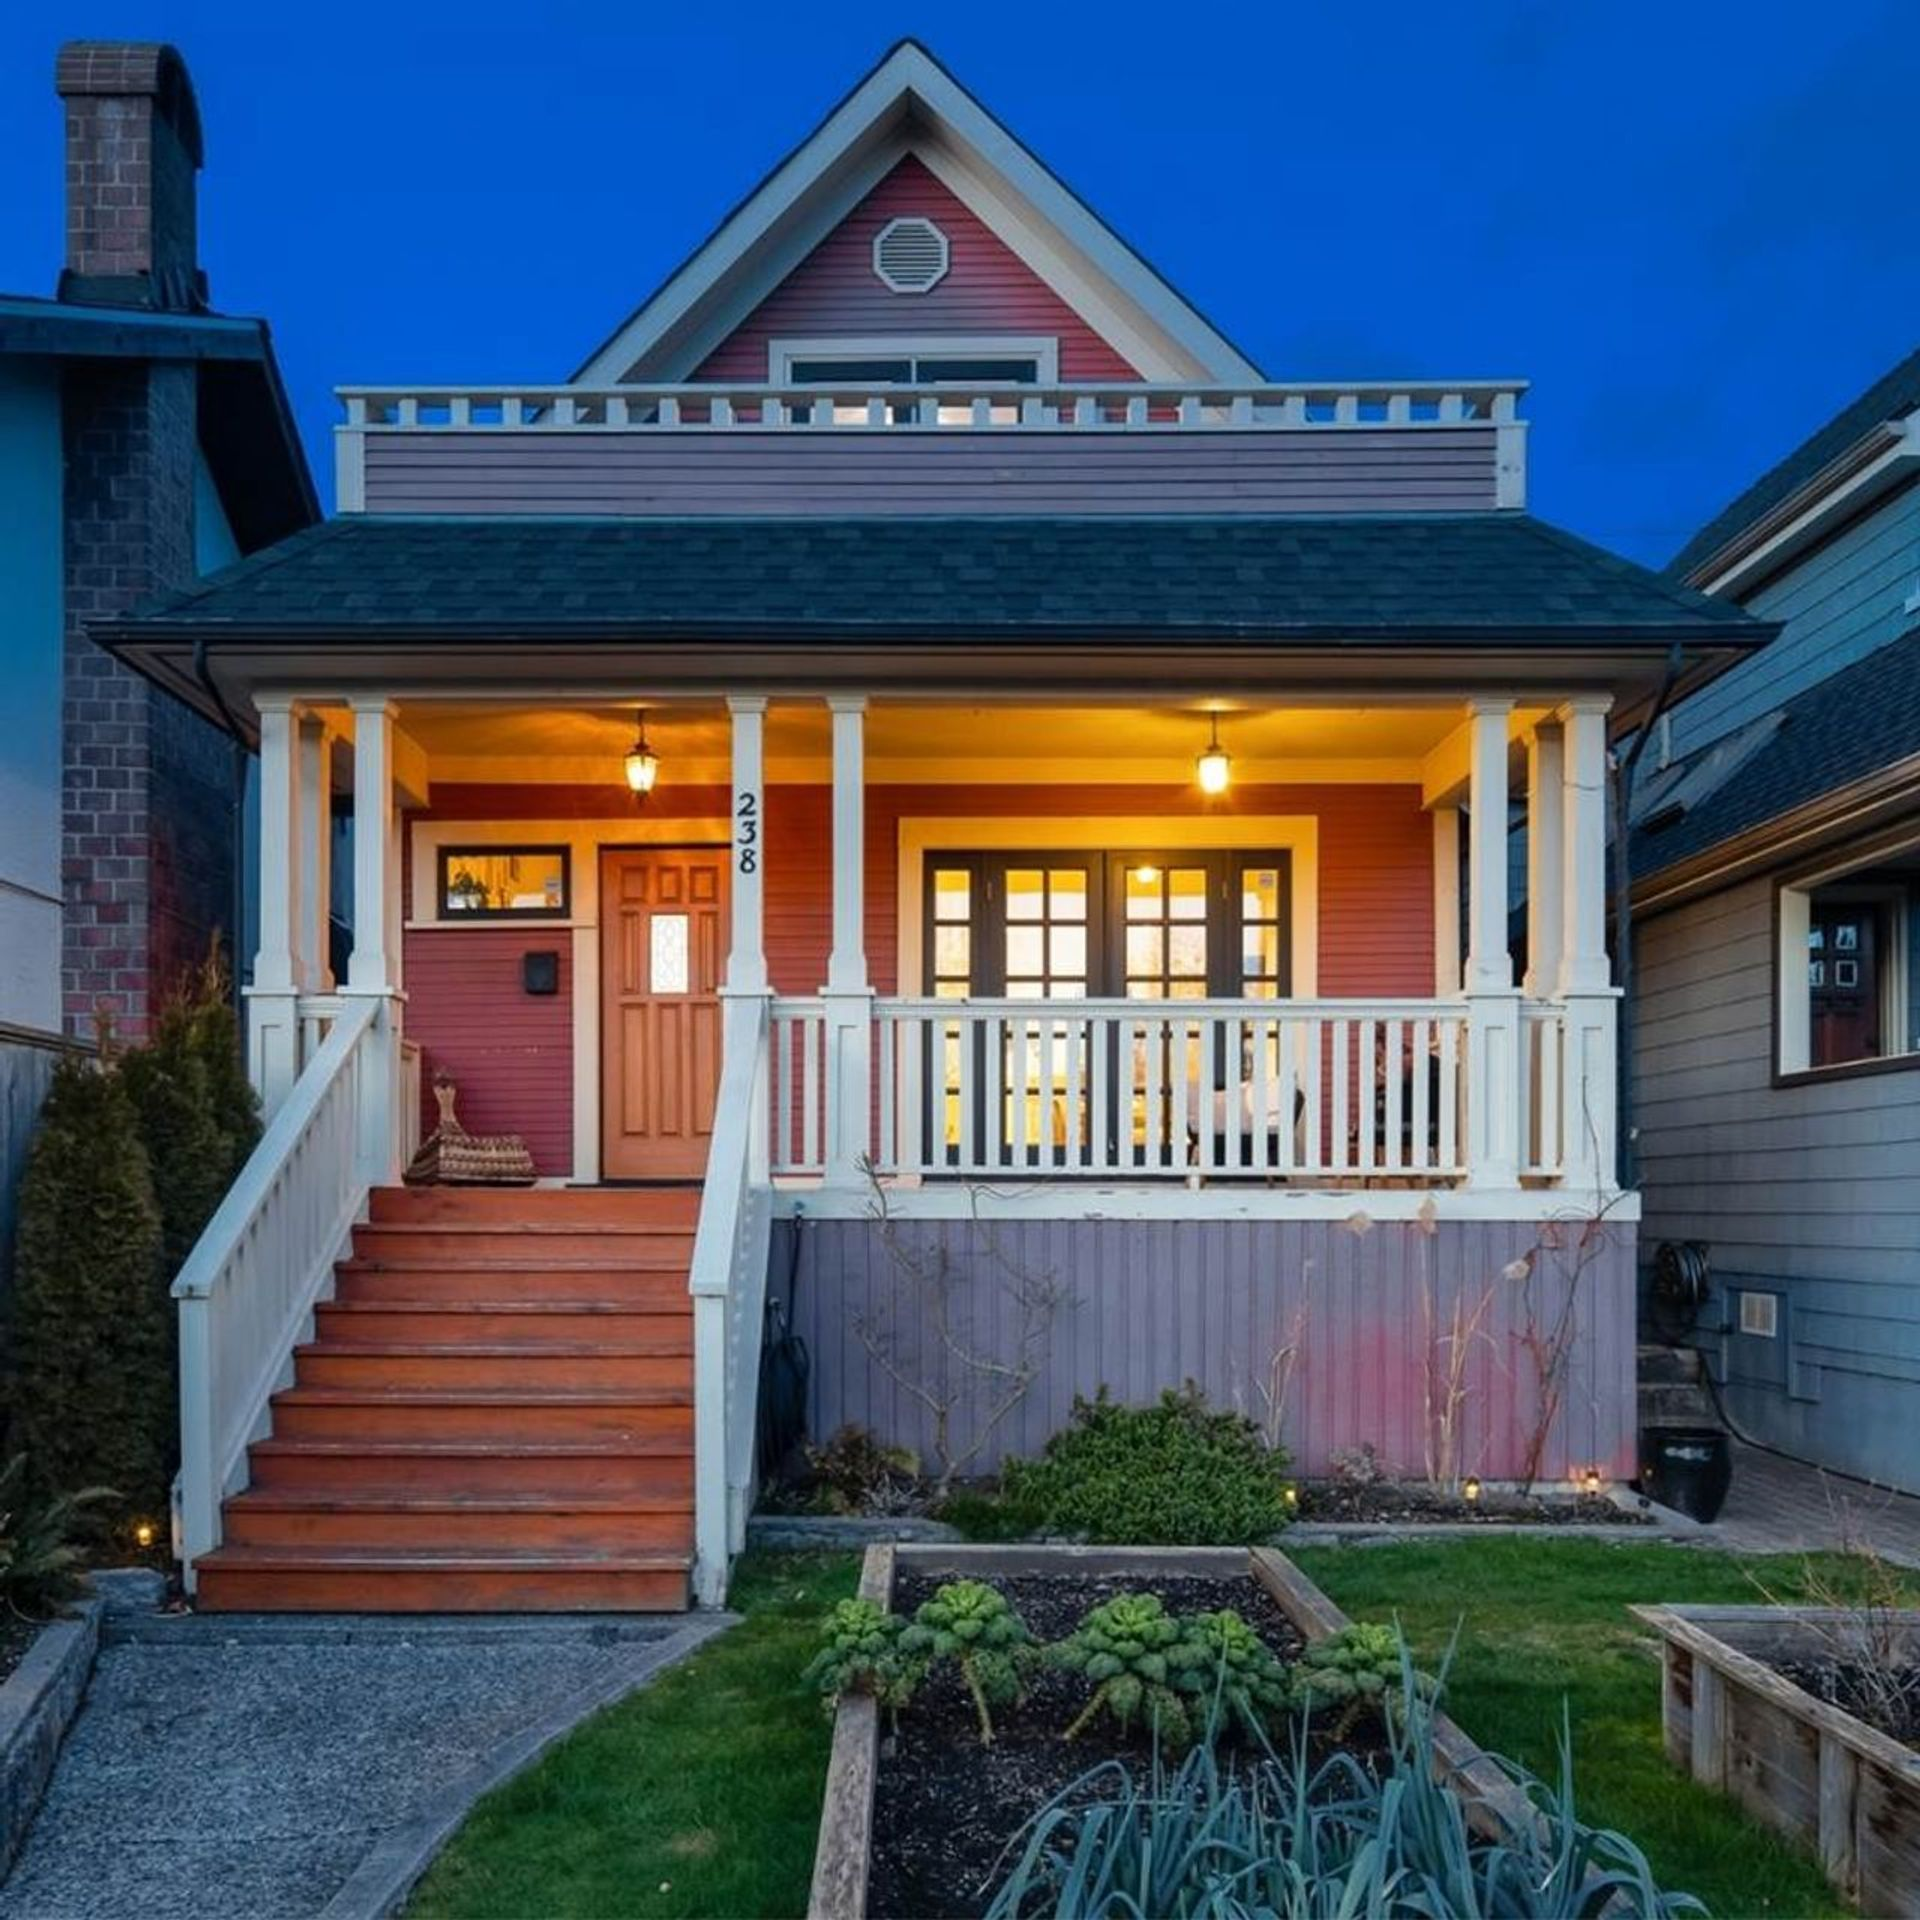 238 W 5th Street, Lower Lonsdale, North Vancouver